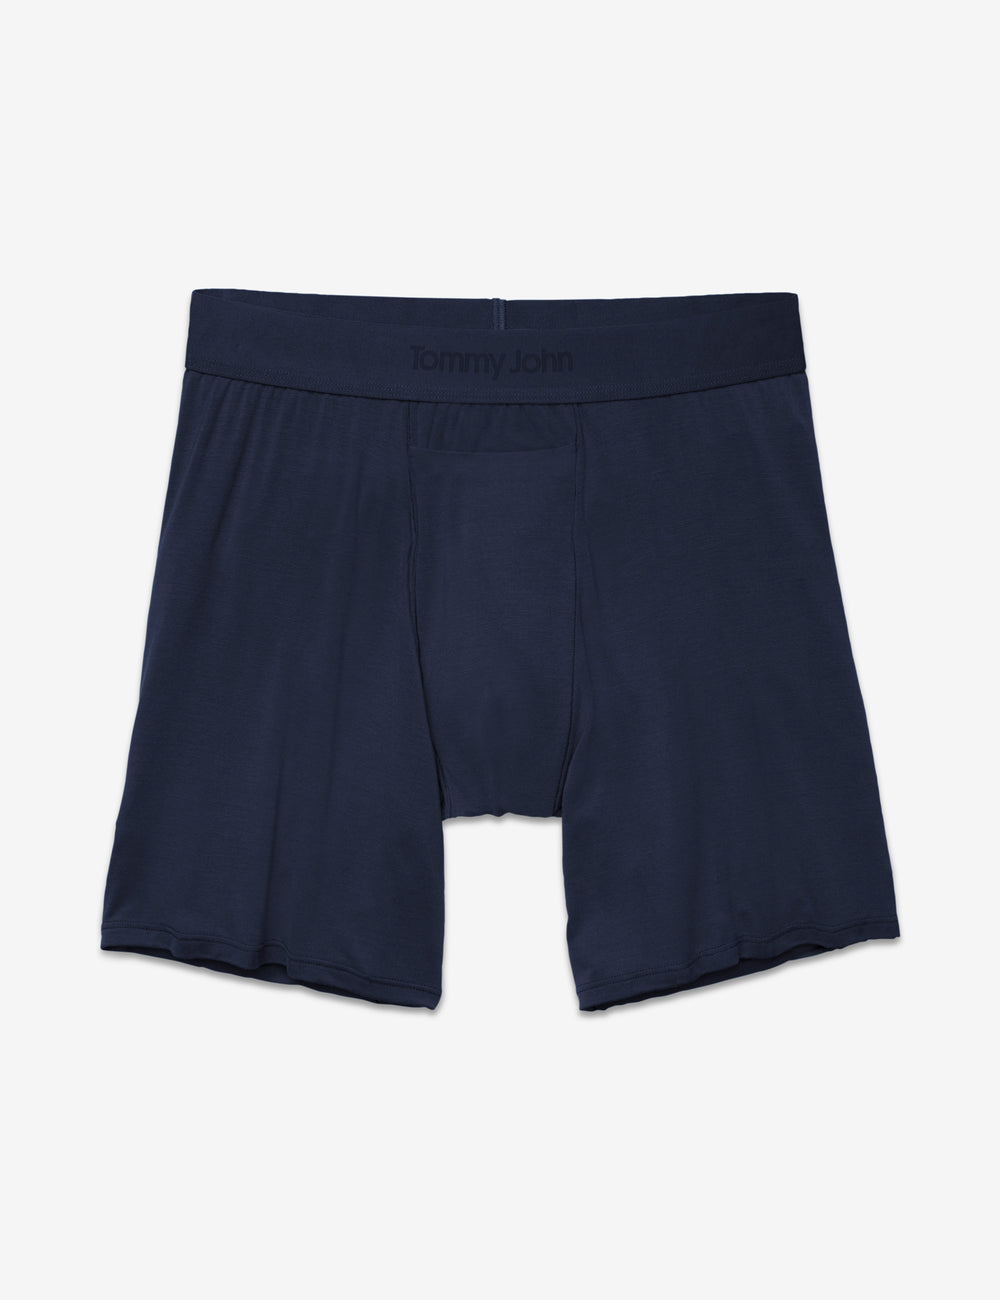 Air Relaxed Fit Boxer Details Image